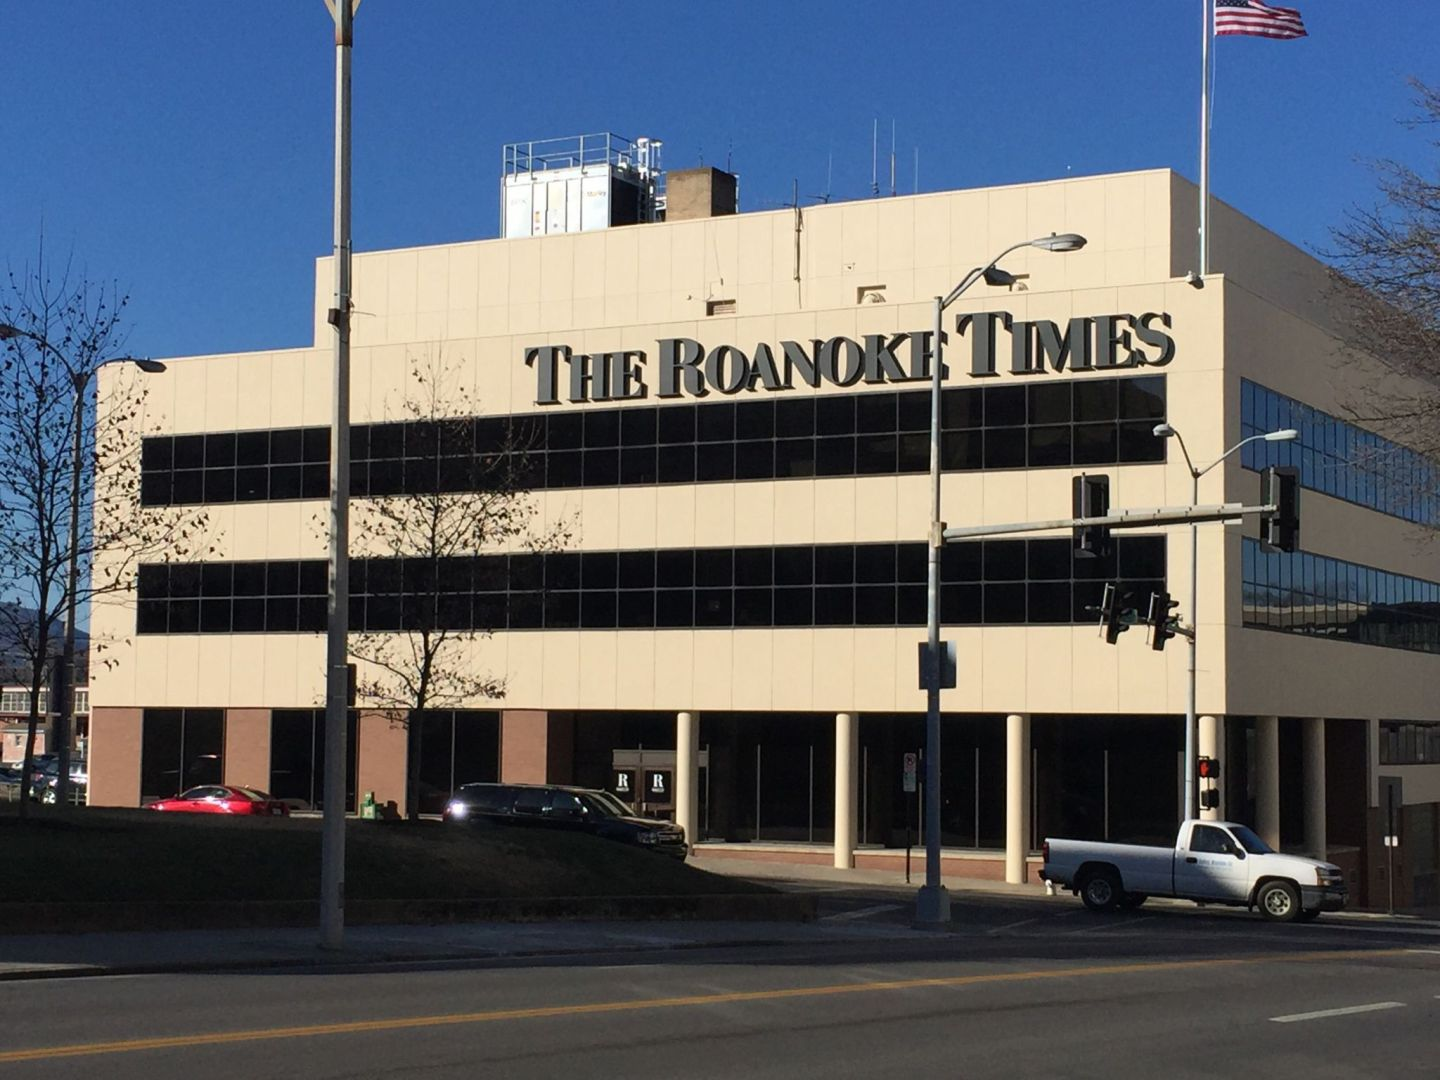 The Roanoke Times. Pic by @jabberingjourno